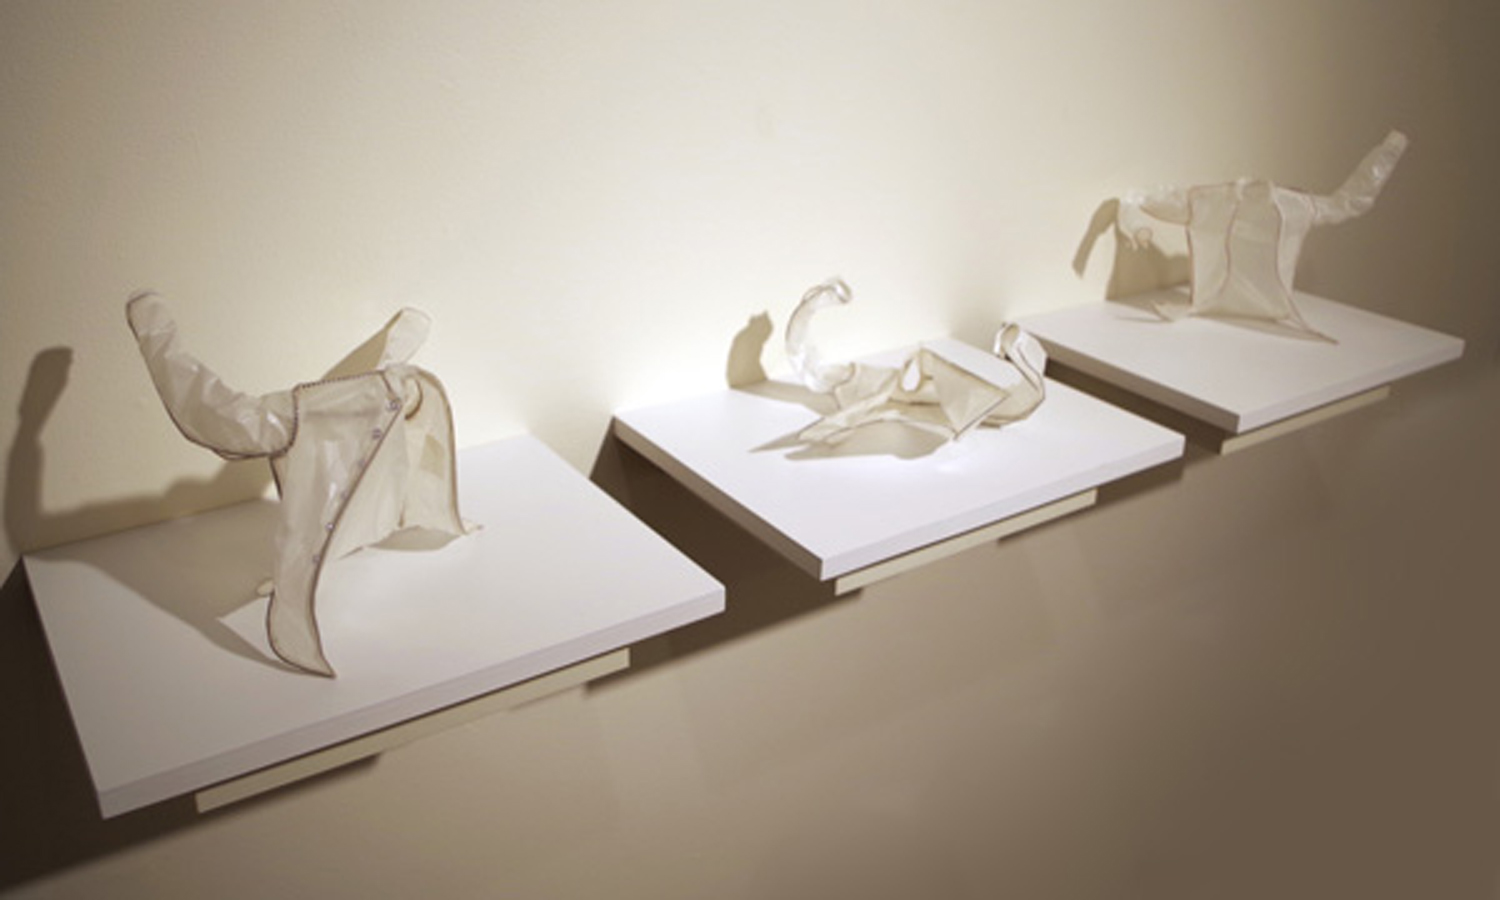 12. 'Edgar's Bad Shirts i, ii, iii', Mikaela Castledine, copper wire, glassine paper, cotton thread, $300 each